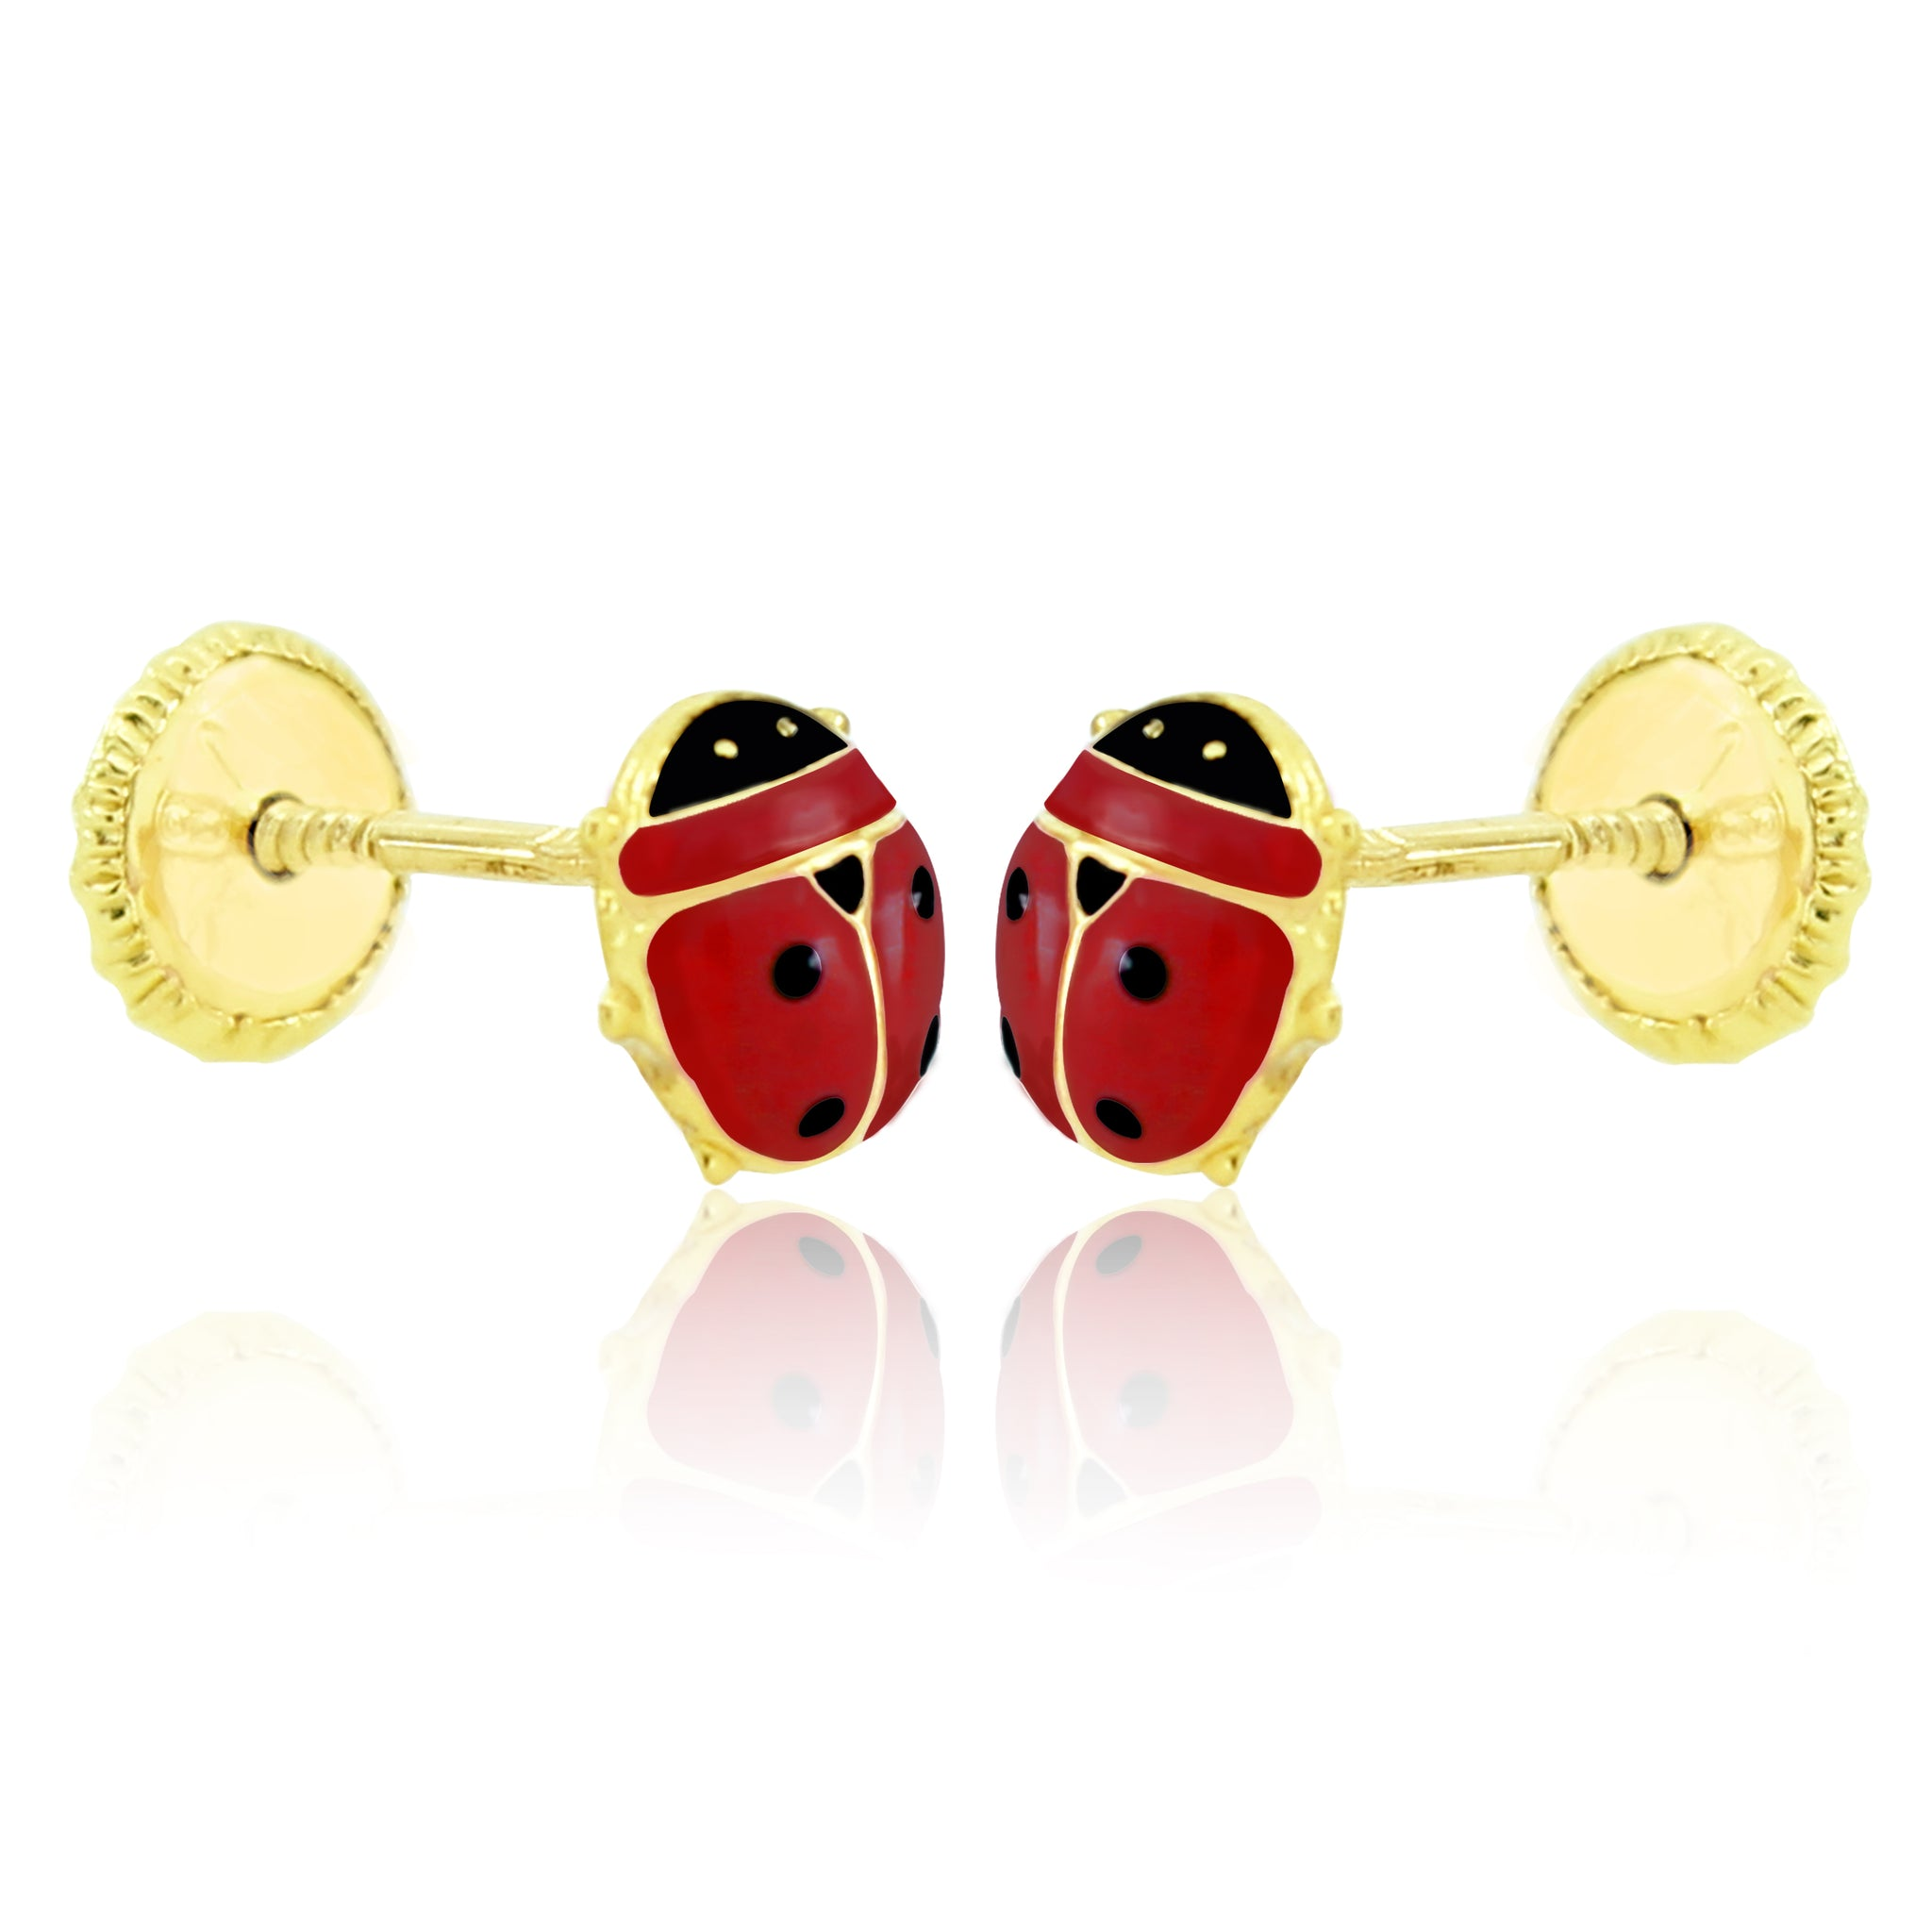 Lady Baby Bug Earrings